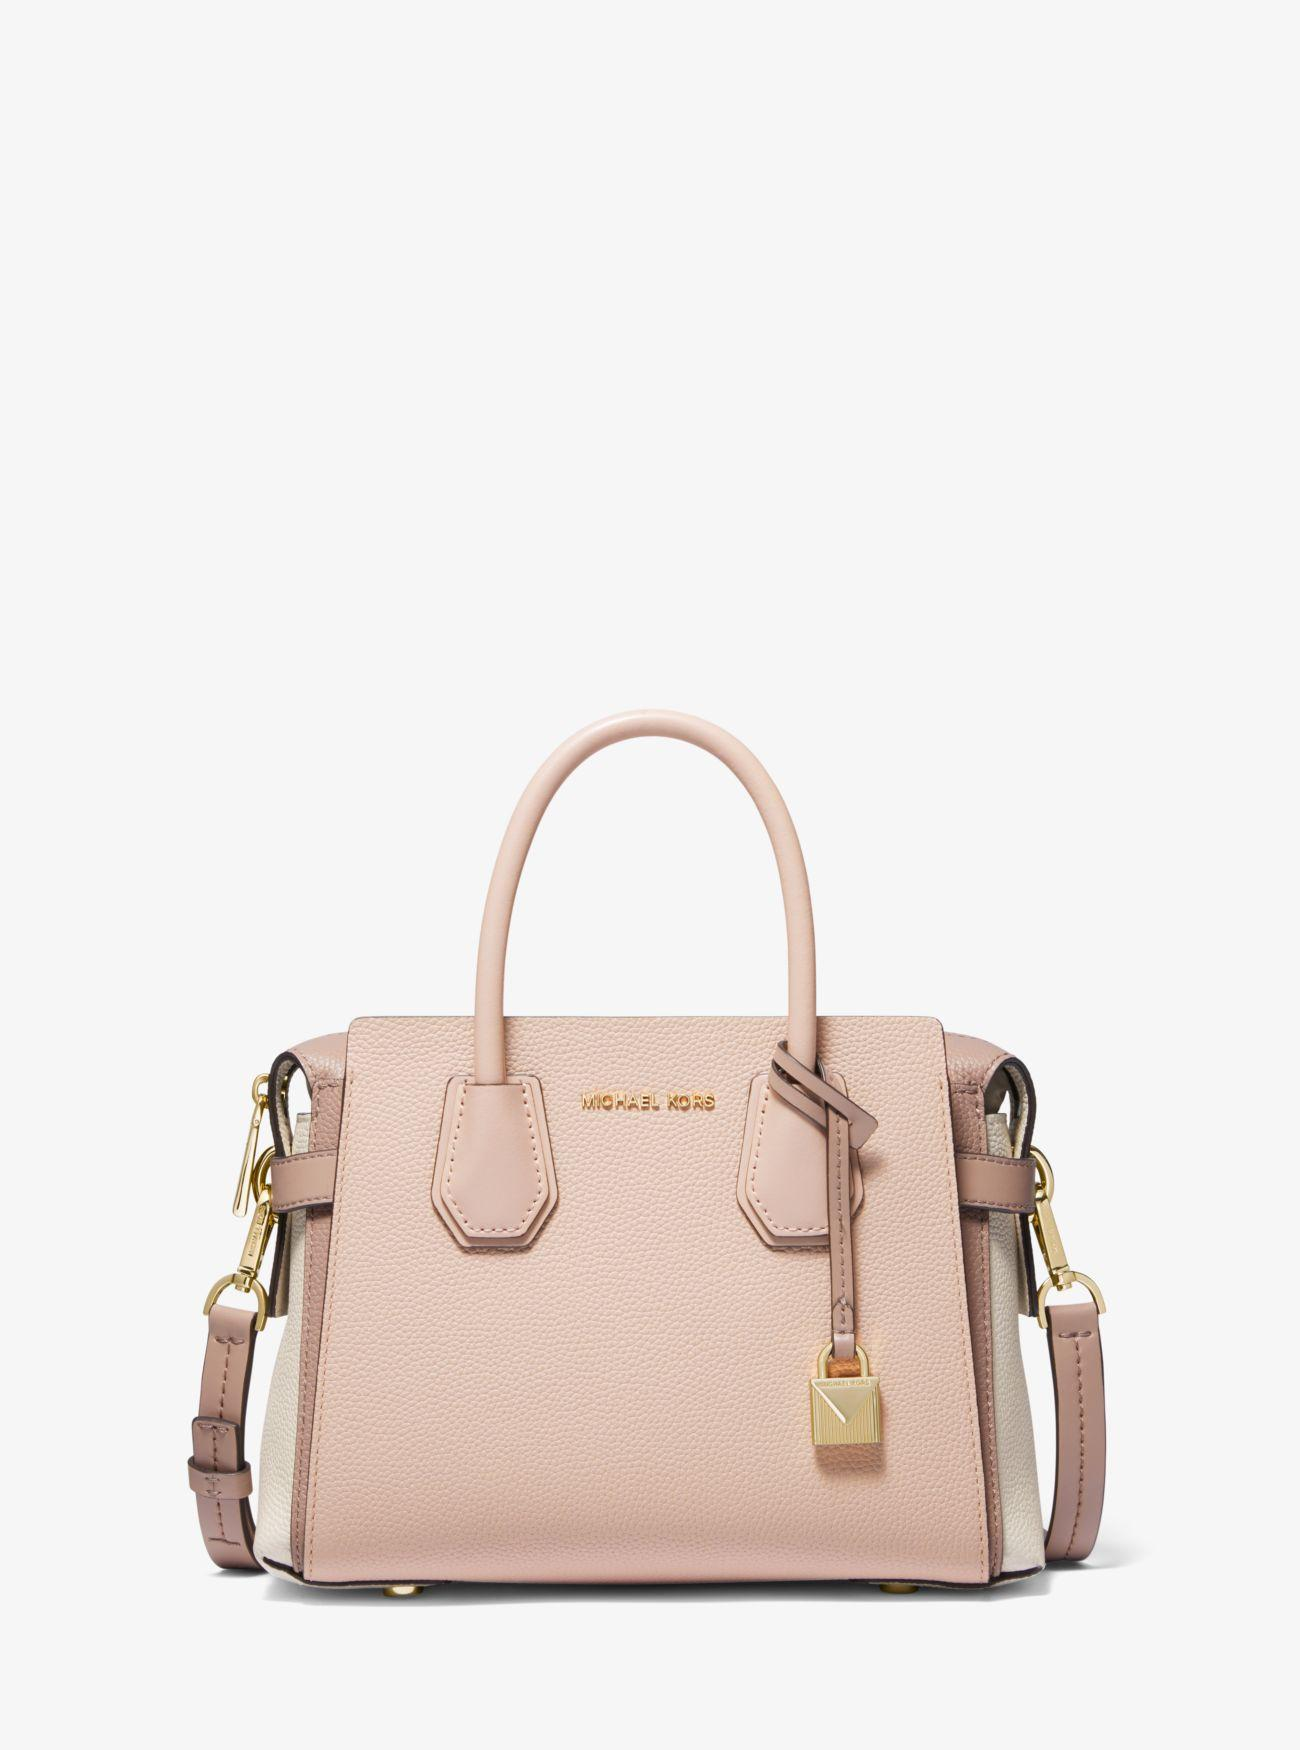 97590dc1db64 MICHAEL Michael Kors - Pink Mercer Small Pebbled Leather Belted Satchel -  Lyst. View fullscreen